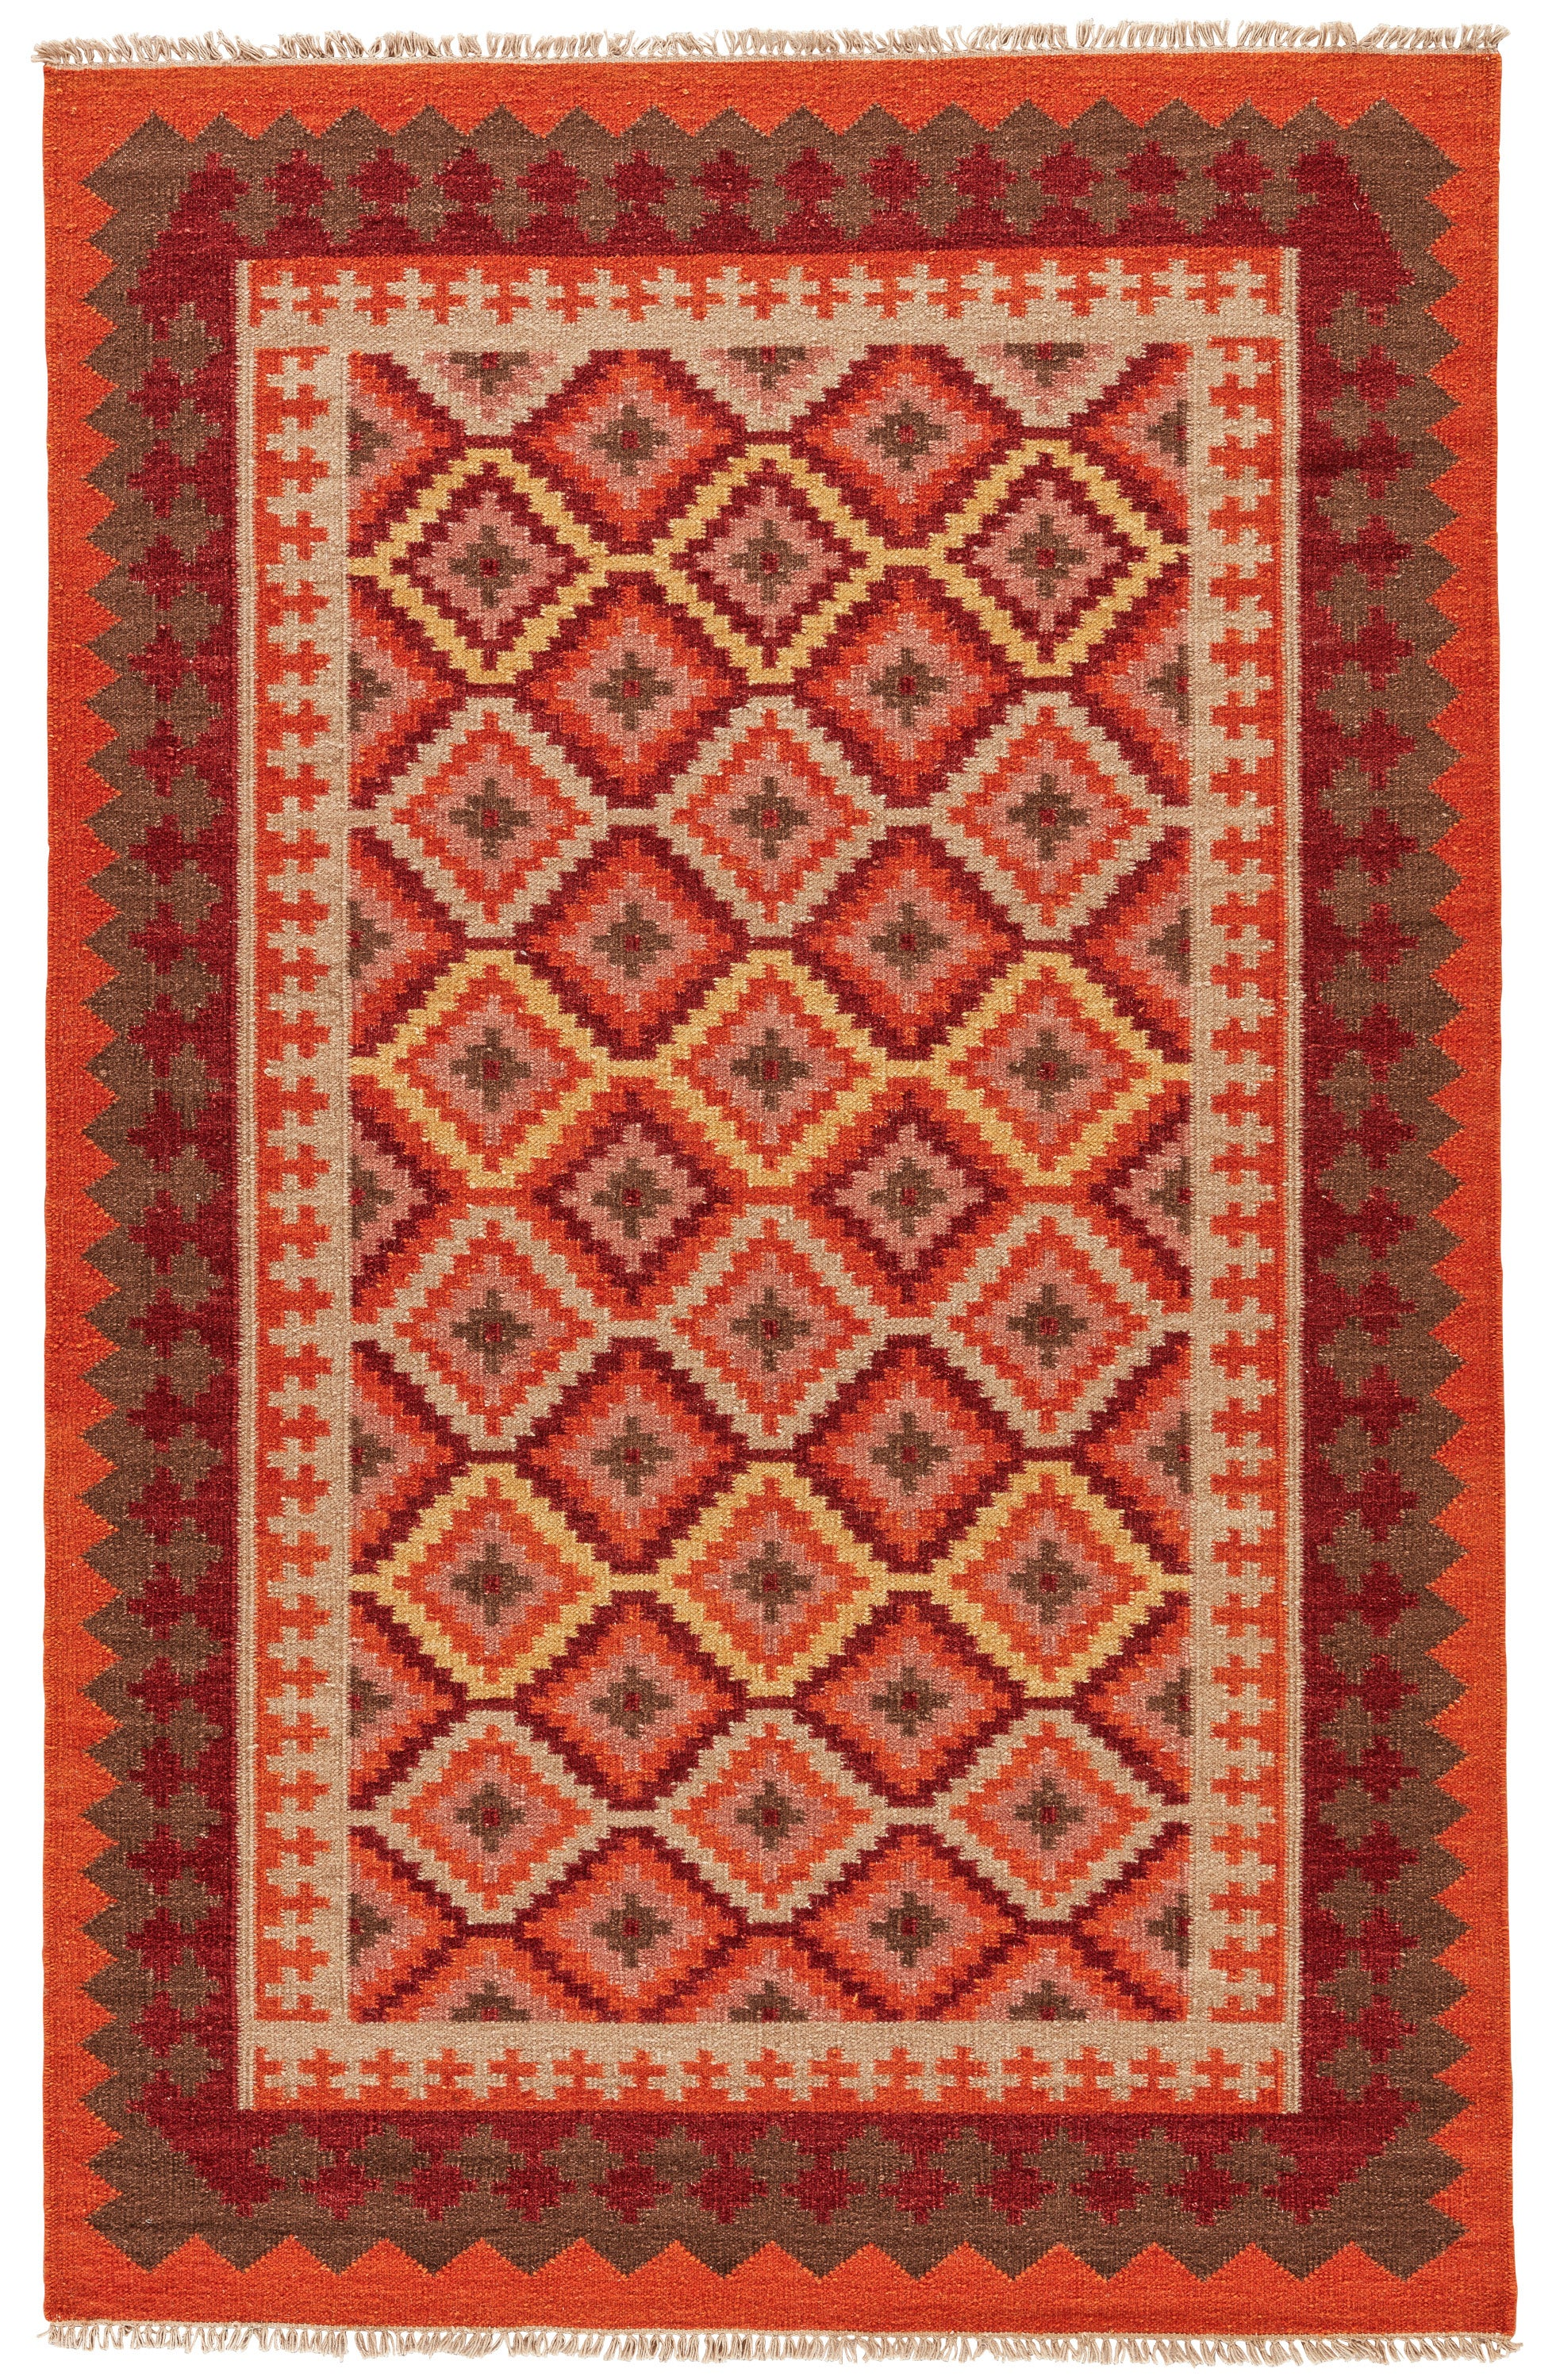 Rectangle Orange Geometric Dhurrie Wool Southwestern recommended for Bedroom, Bathroom, Dining Room, Office, Hallway, Living Room